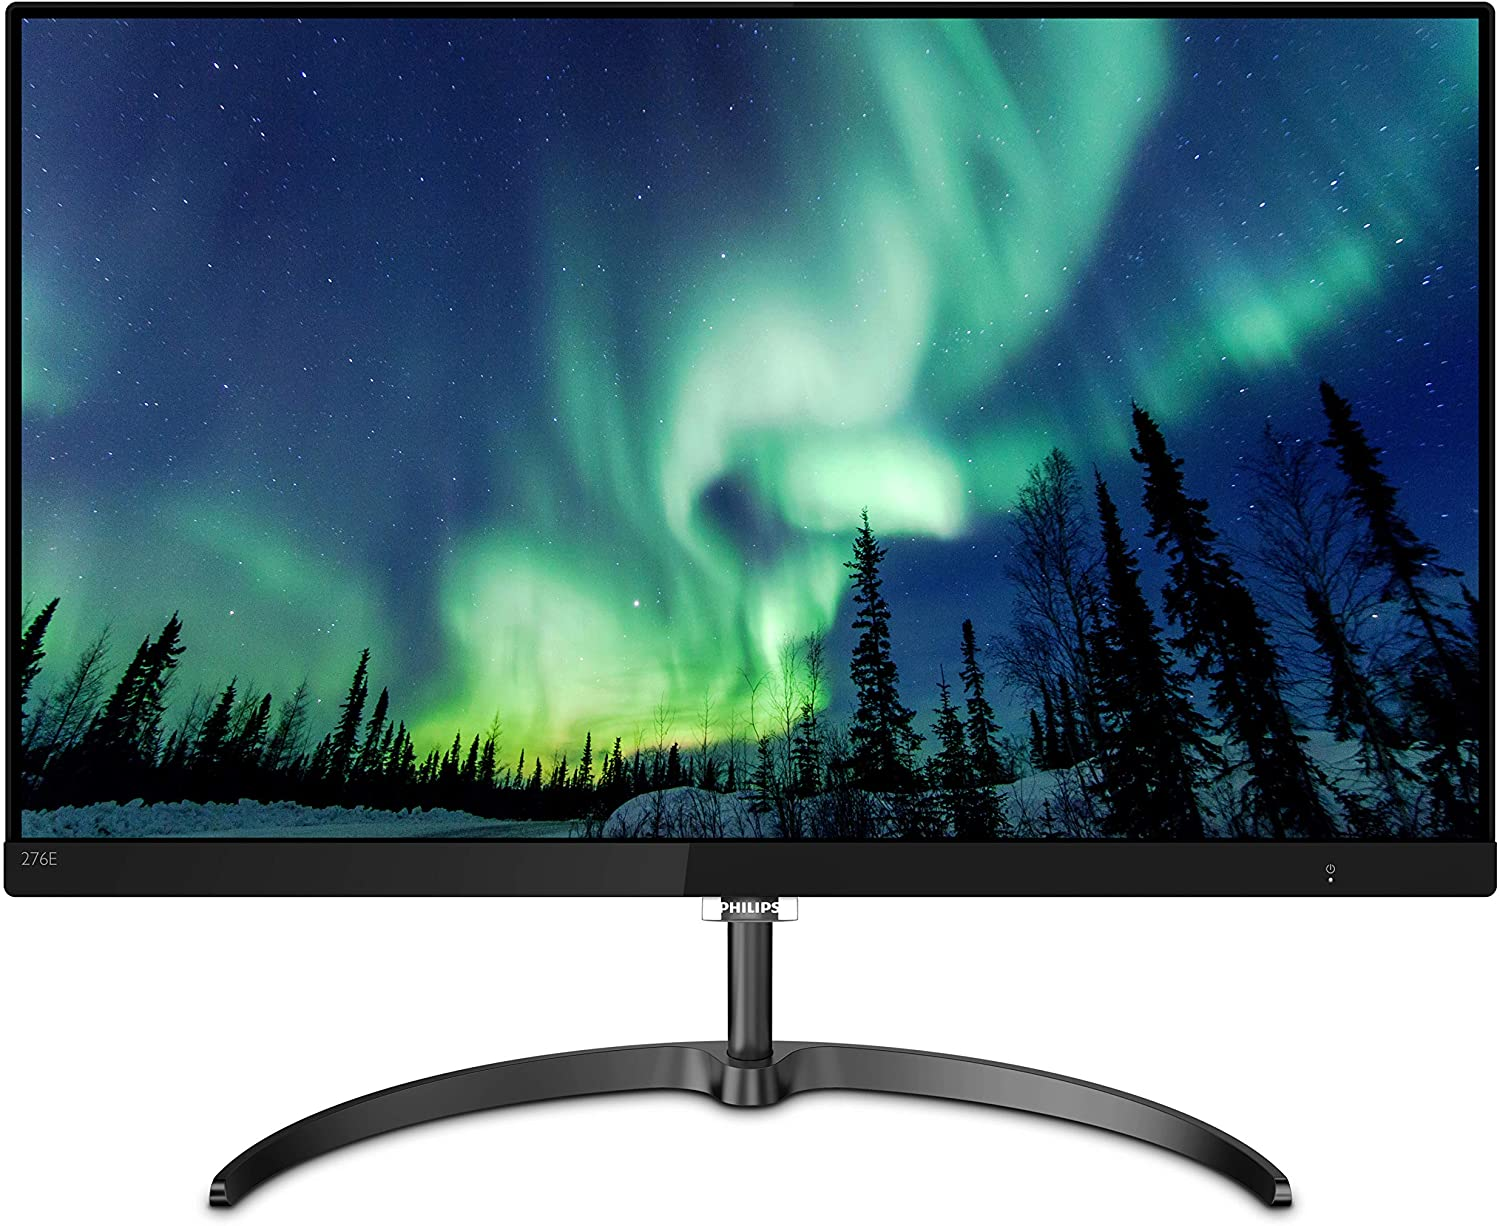 Philips 276E8VJSB 4K monitor under $300